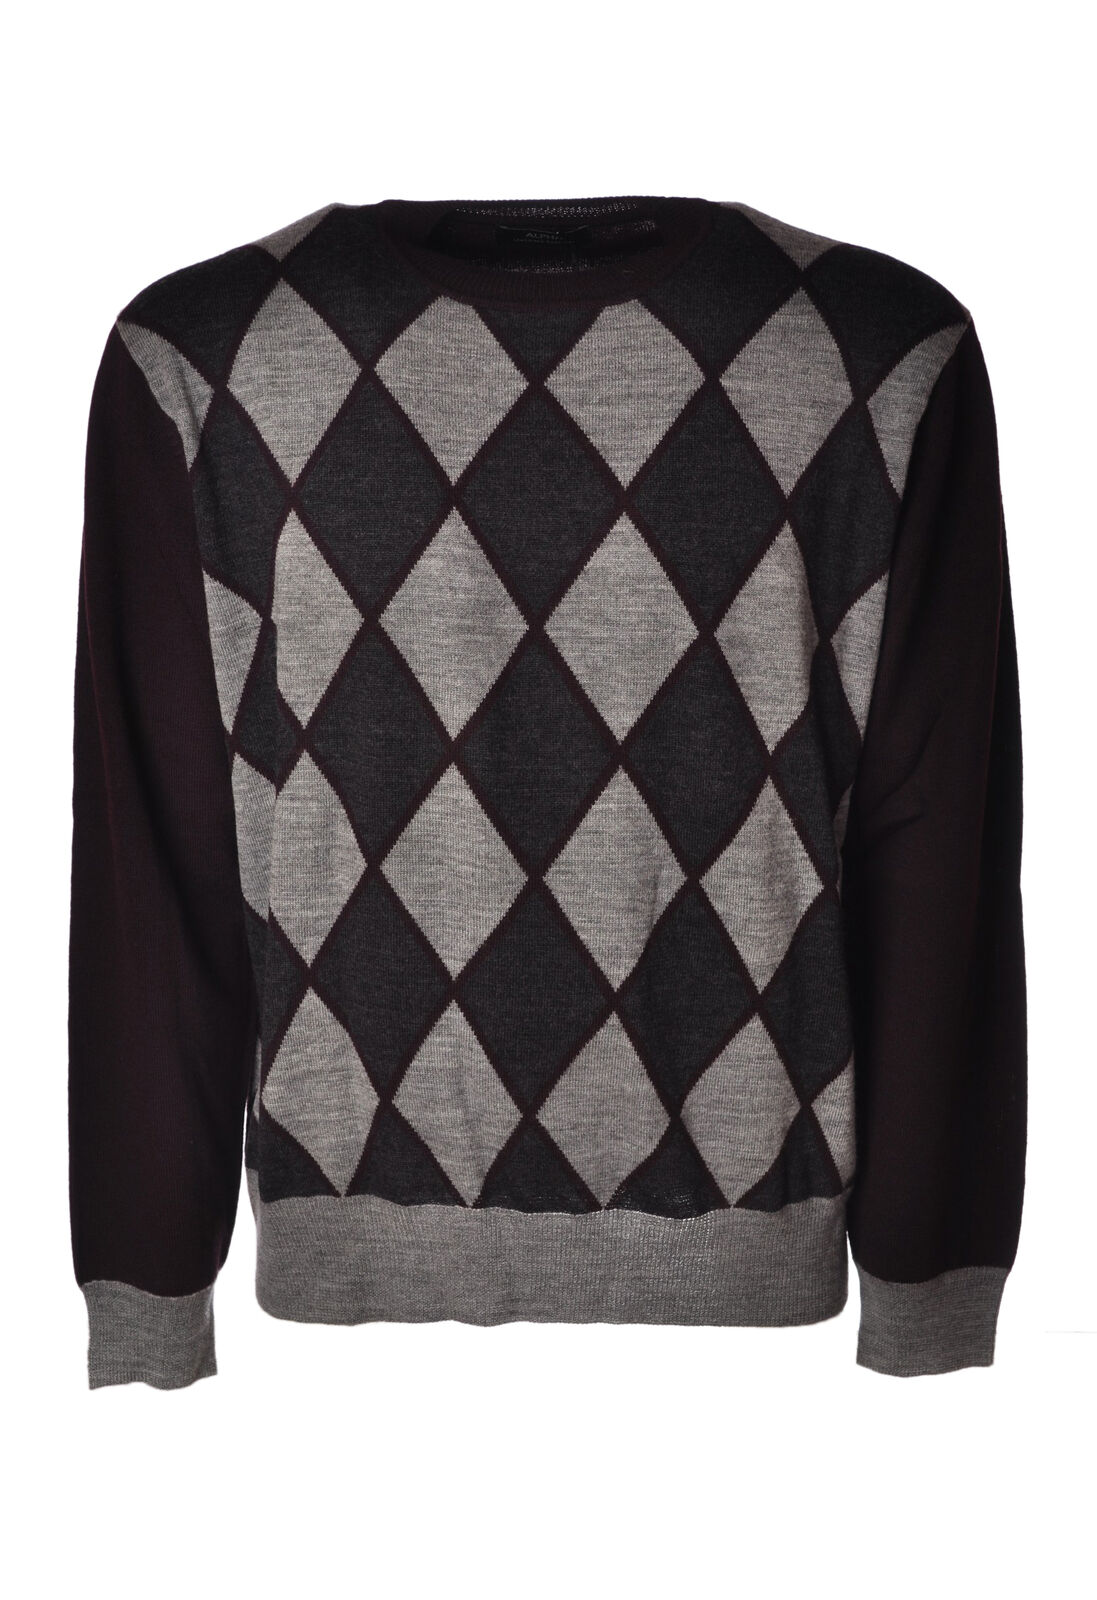 Alpha - Knitwear-Sweaters Knitwear-Sweaters Knitwear-Sweaters - Hombre - Fantasy - 4570516N185135 77fbfe